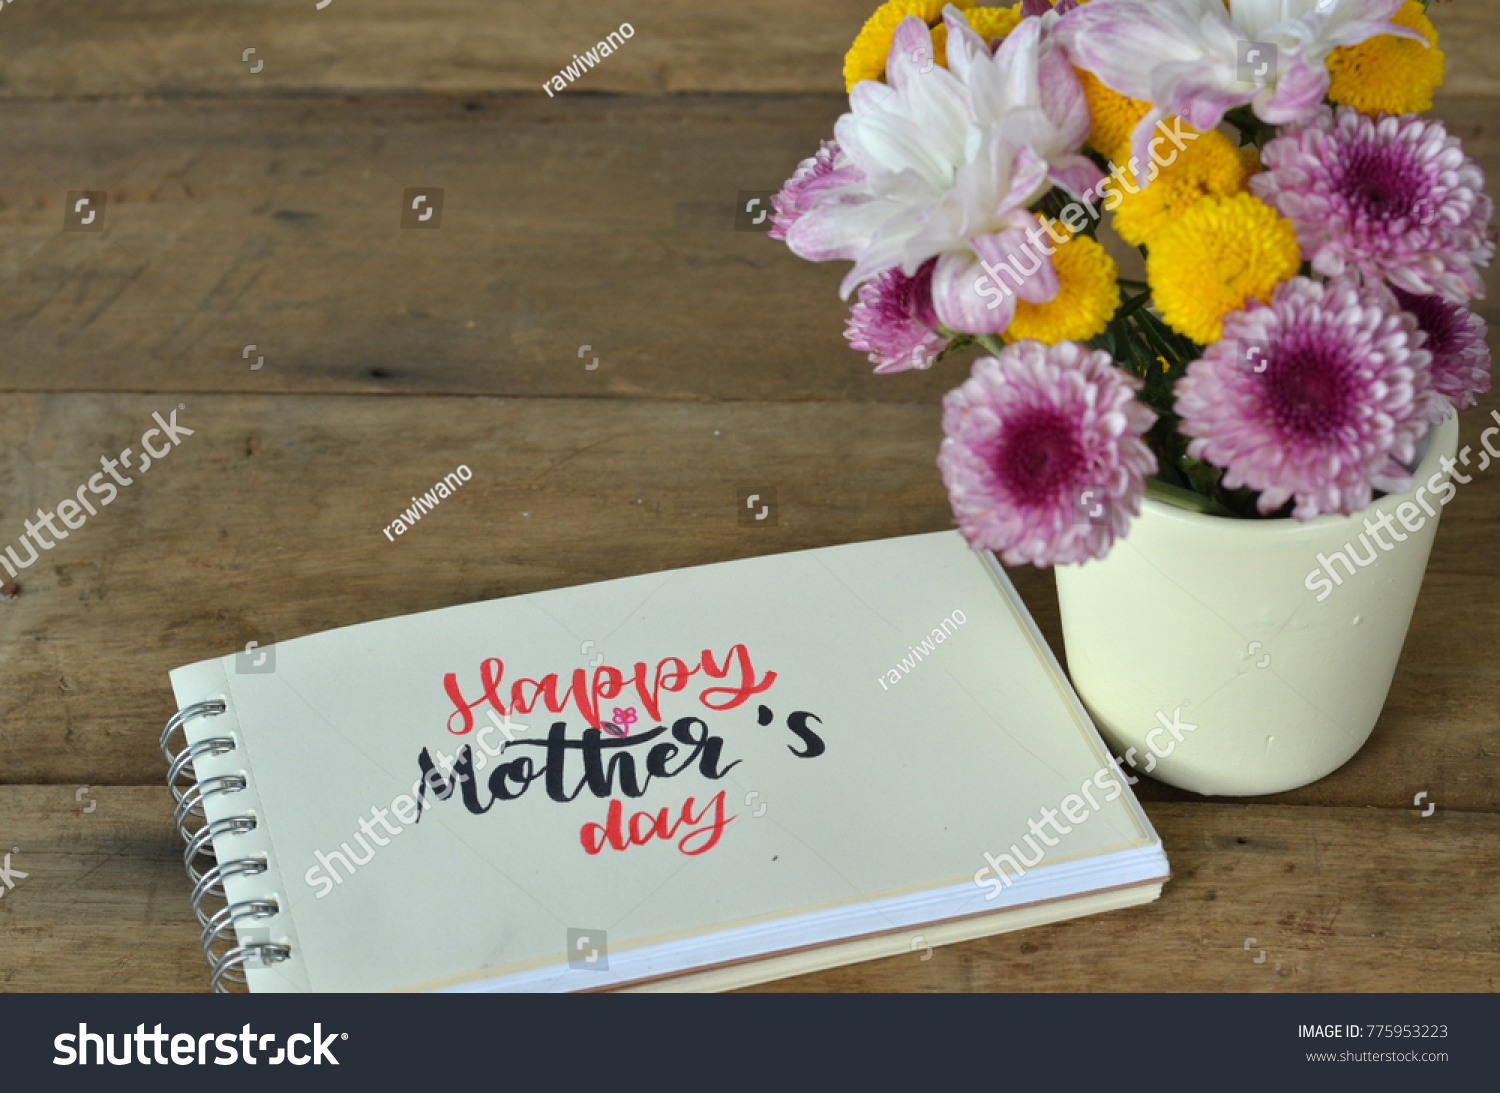 Happy mothers day card greeting words stock photo 775953223 happy mothers day card with greeting words for mom red heart gift box and kristyandbryce Choice Image